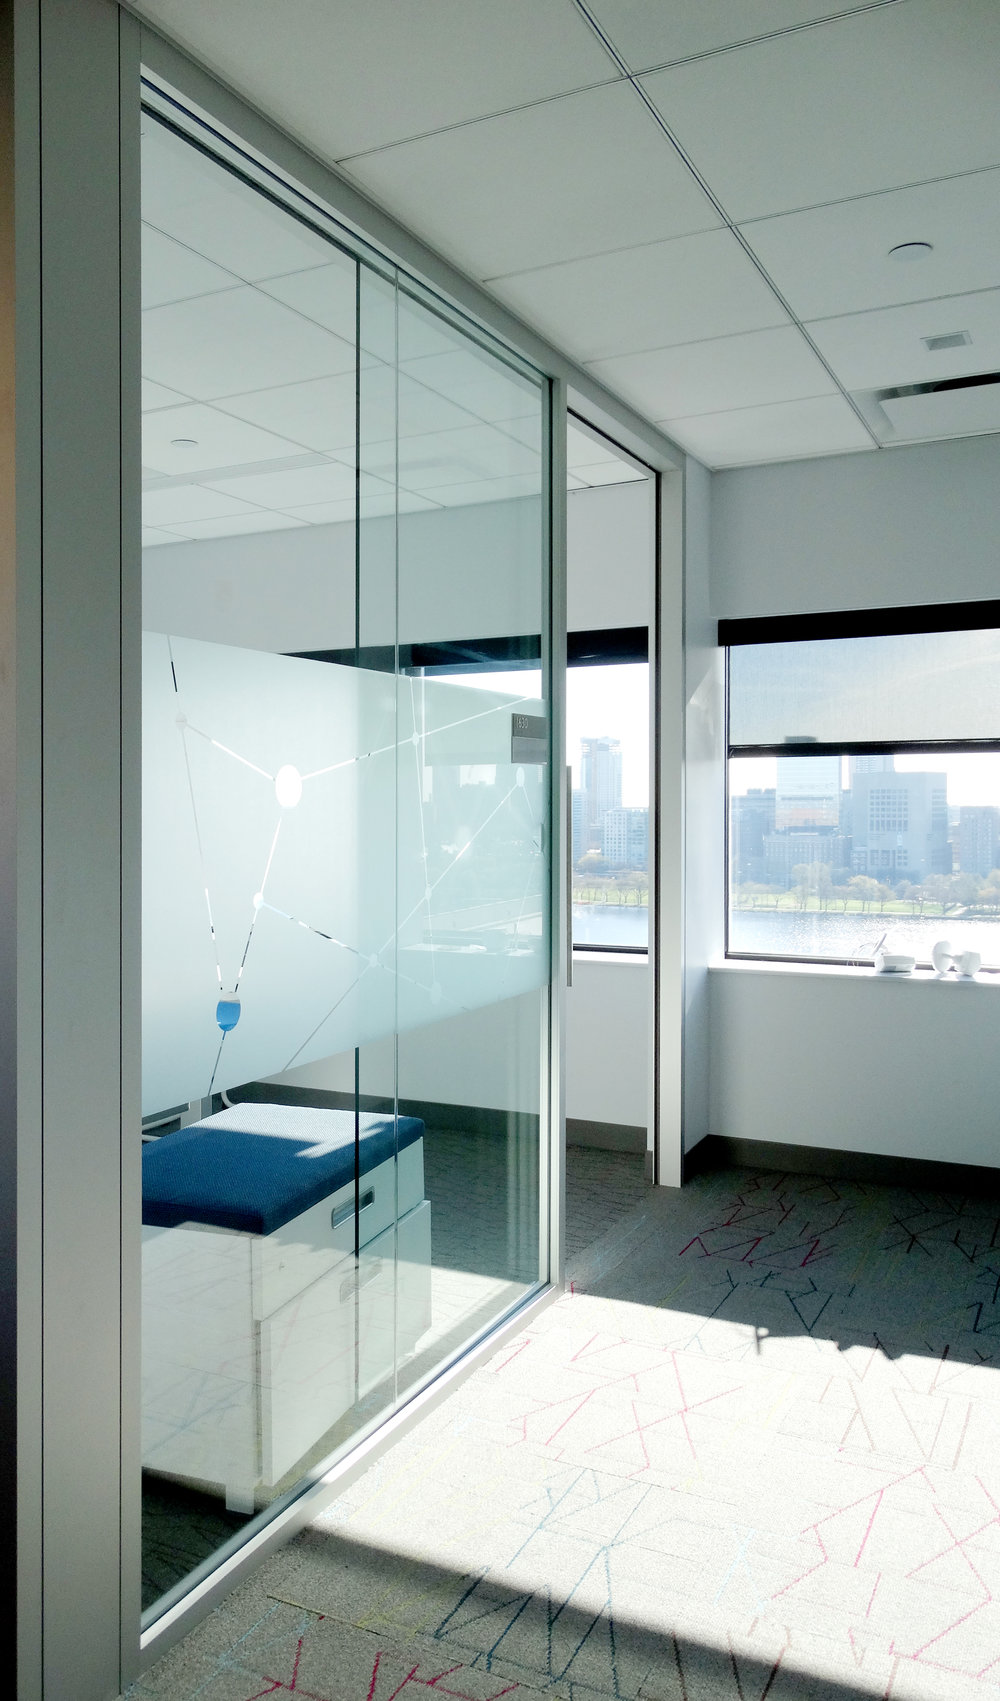 Litespace Glass Wall Specialty Film - Spaceworks AI.jpg